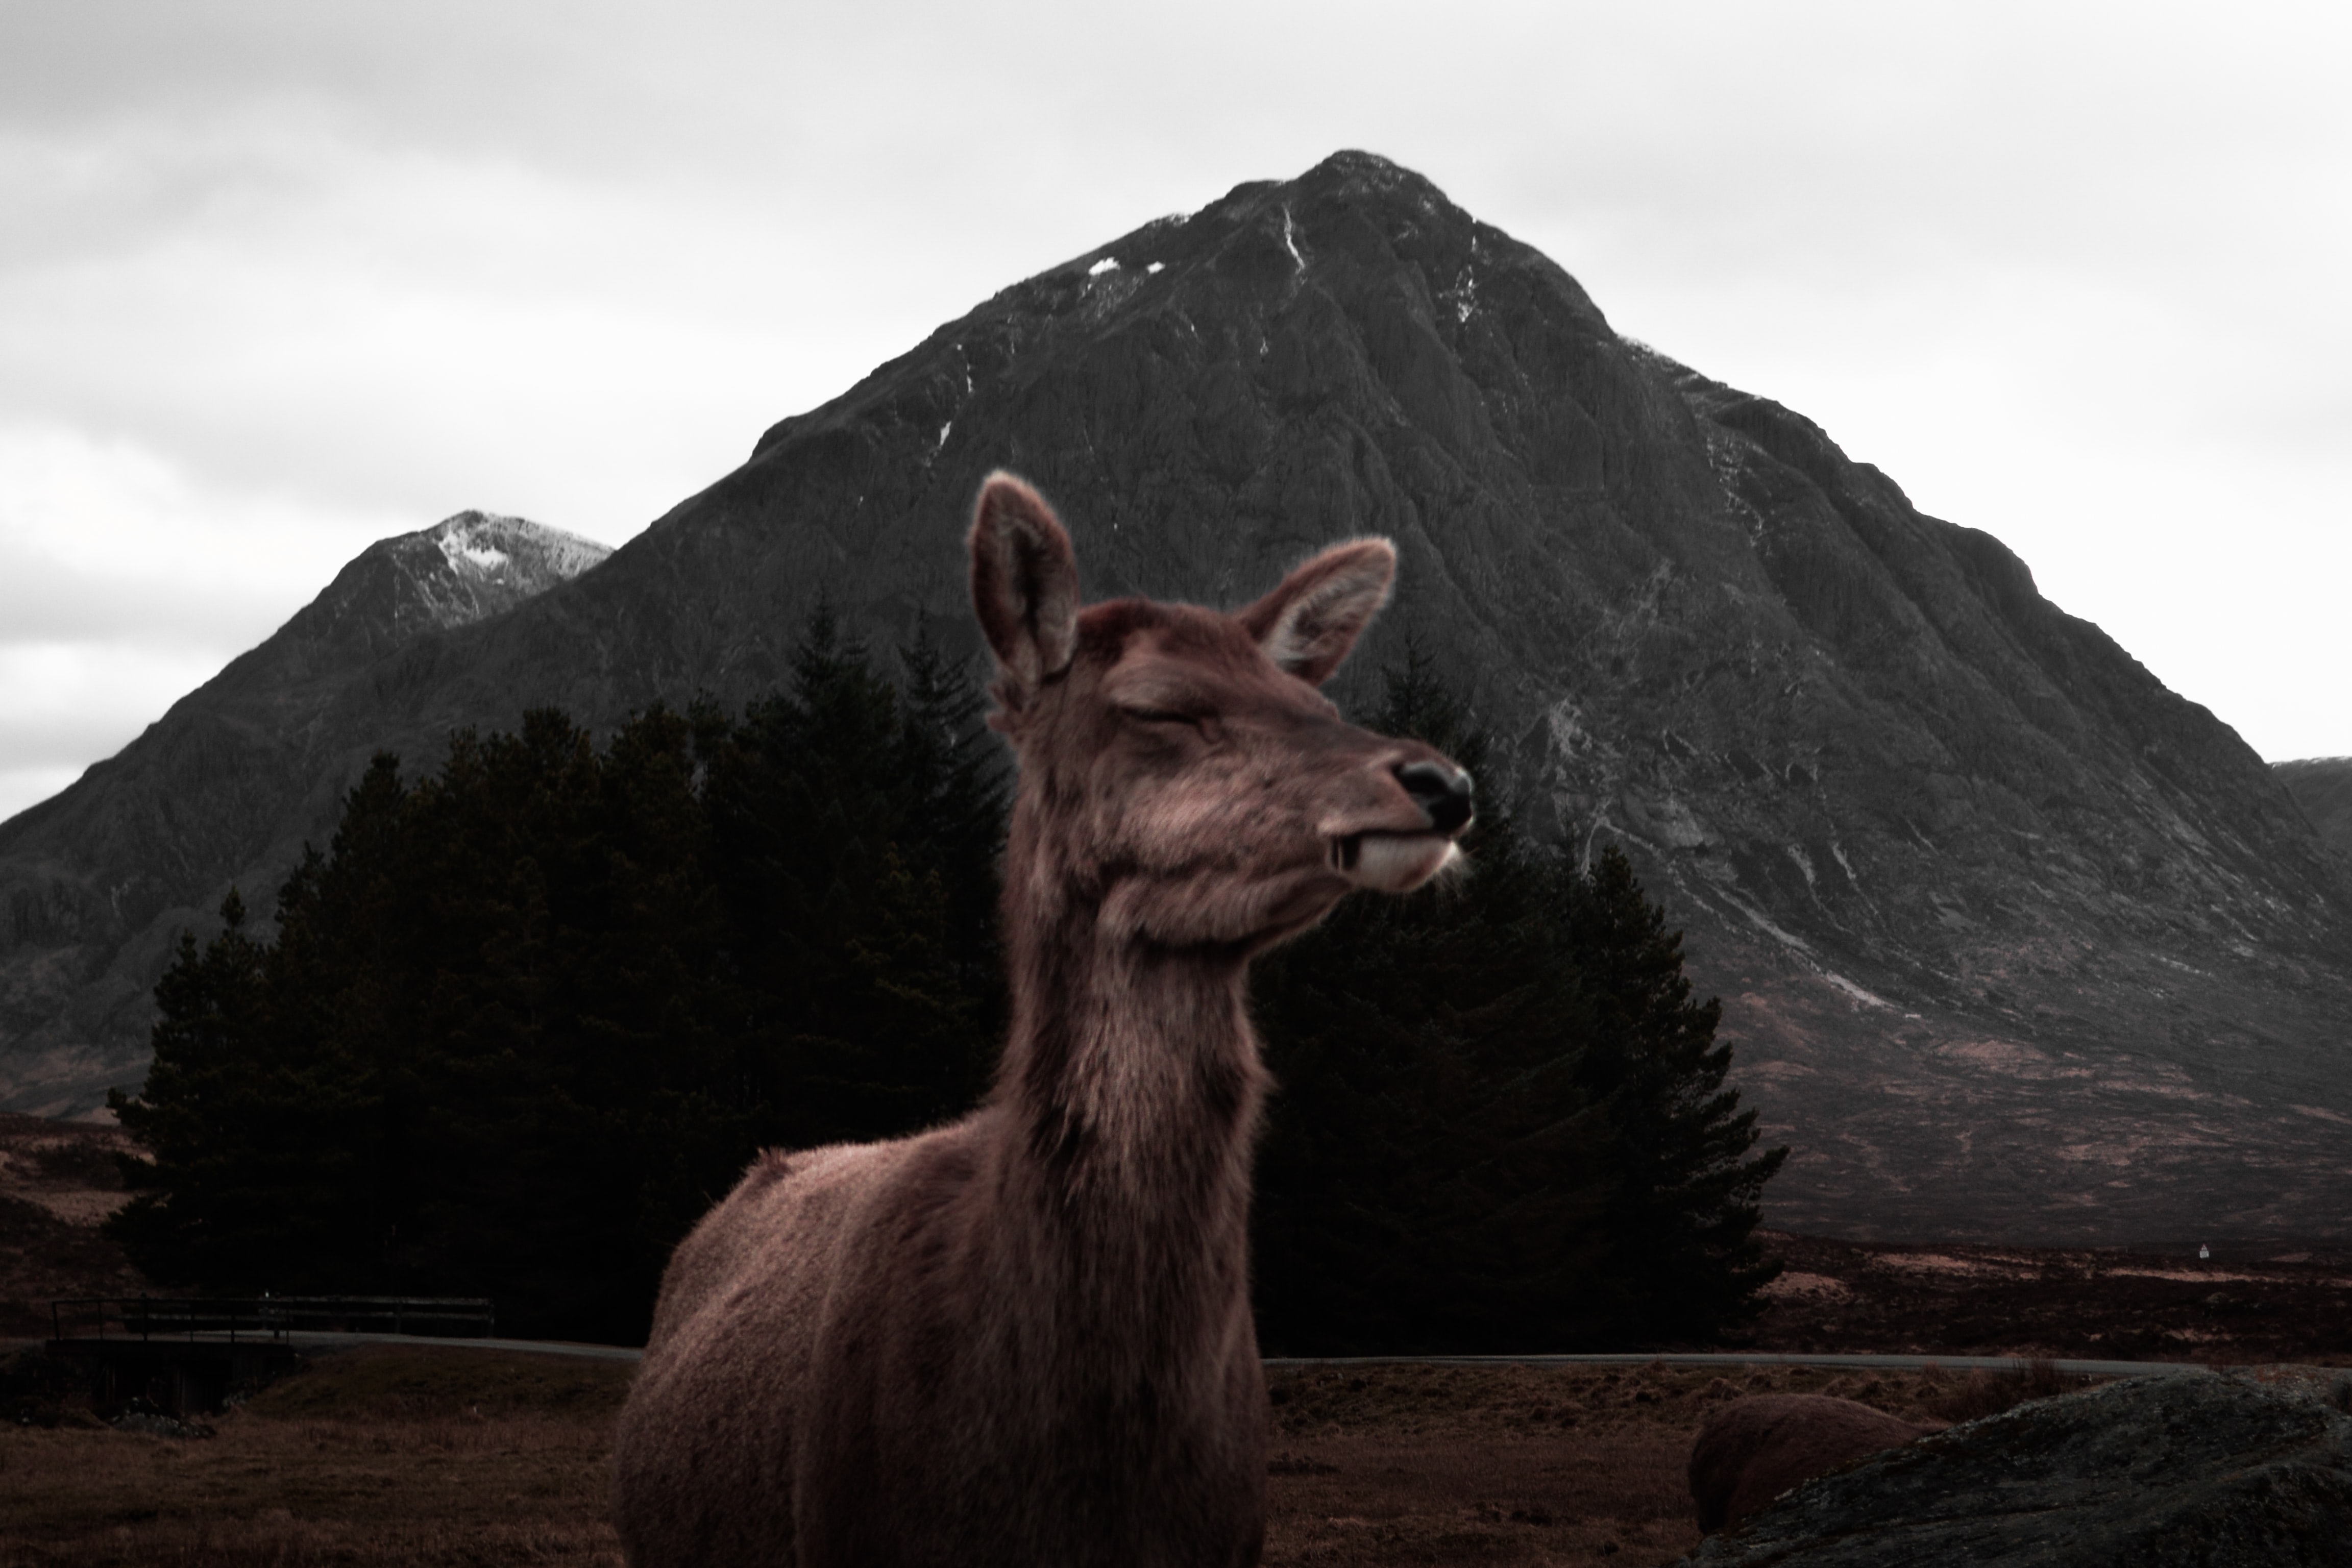 Close-up of a deer with its eyes closed near a conical mountain in Glencoe